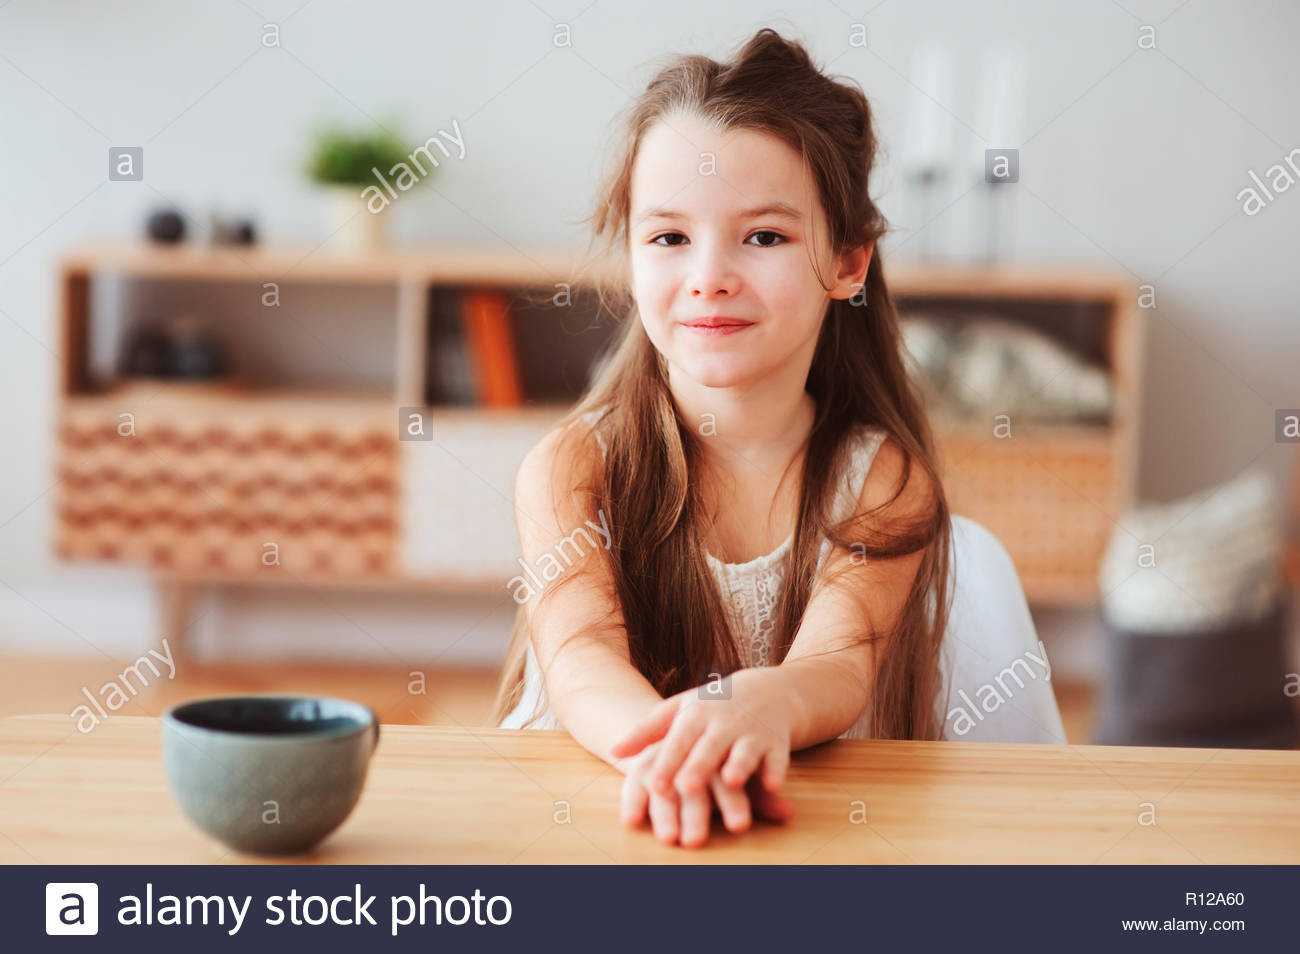 Portrait of a happy girl sitting at a table - Stock Image